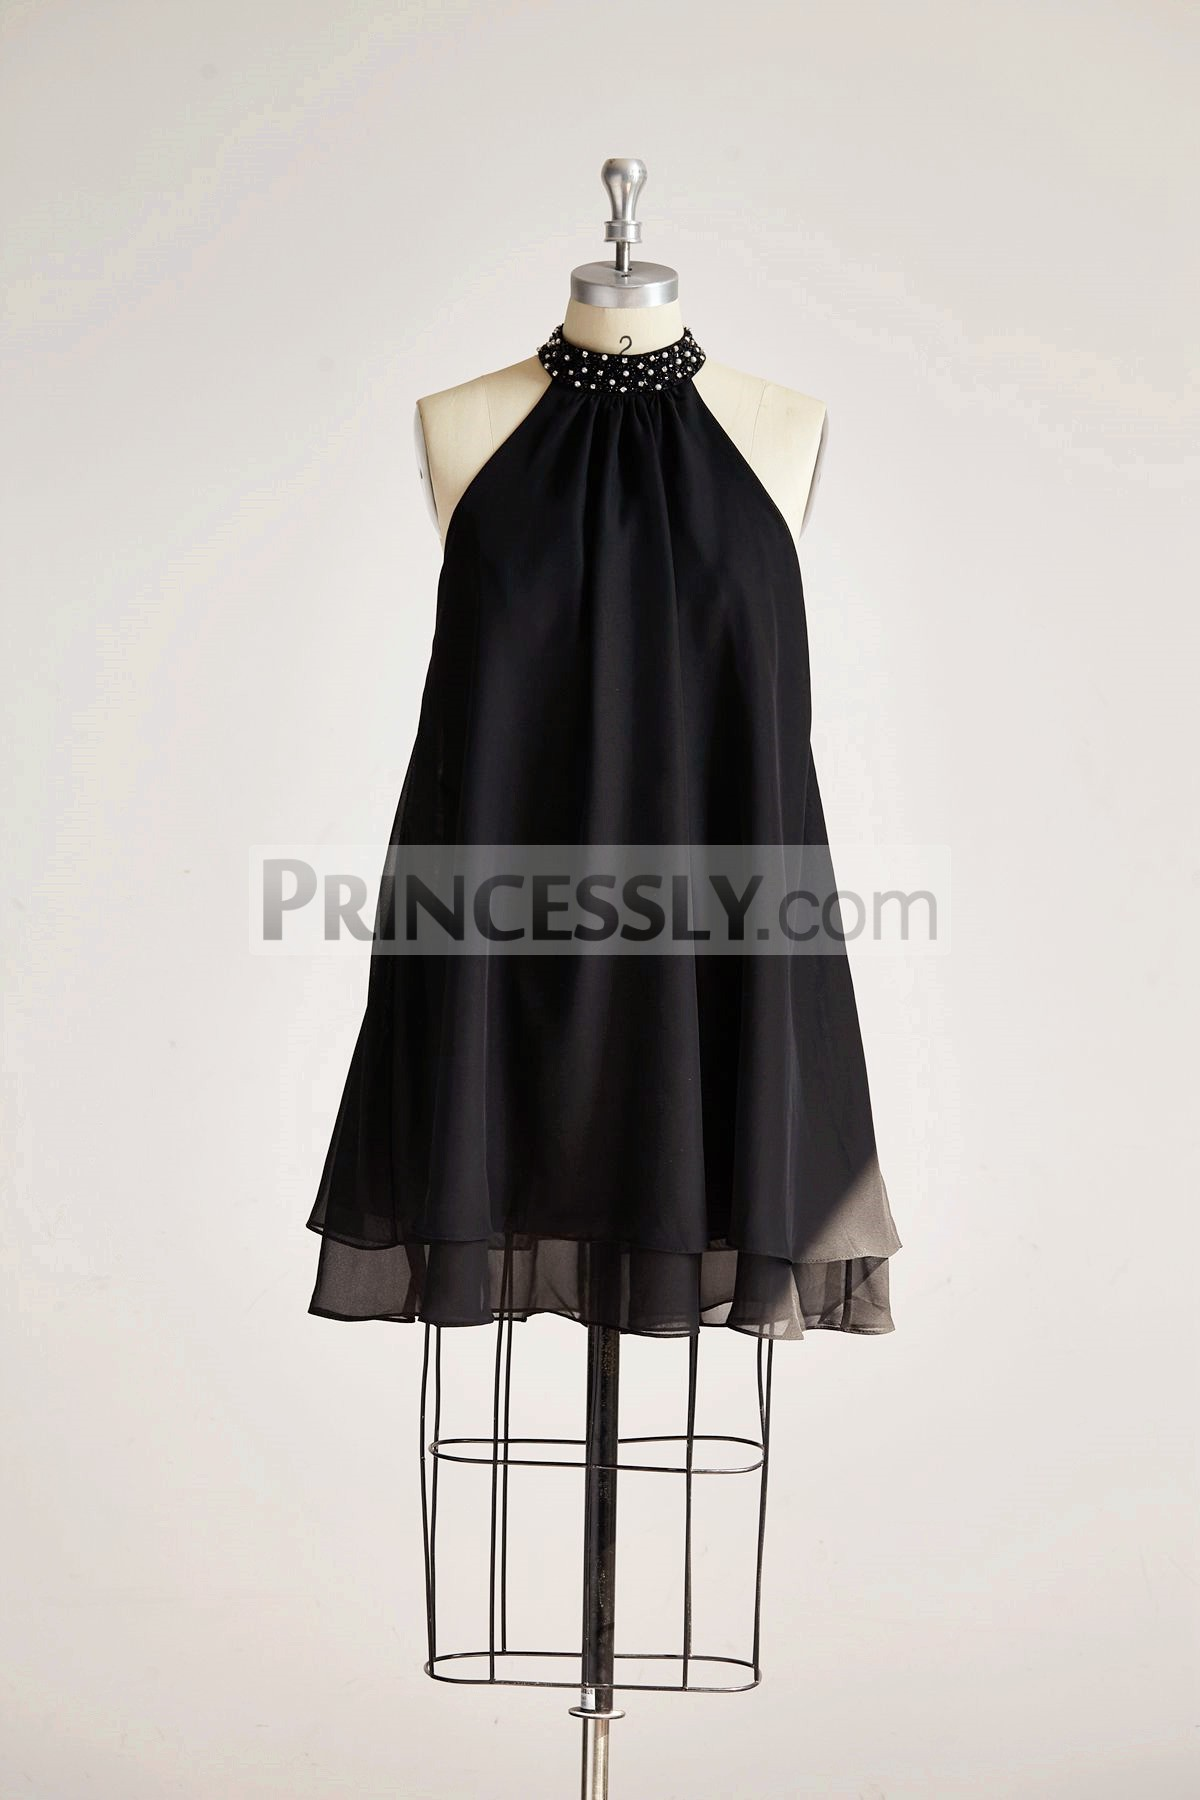 Princessly.com-K1000317 Black Chiffon High Neck Beaded Short Bridesmaid Dress-31